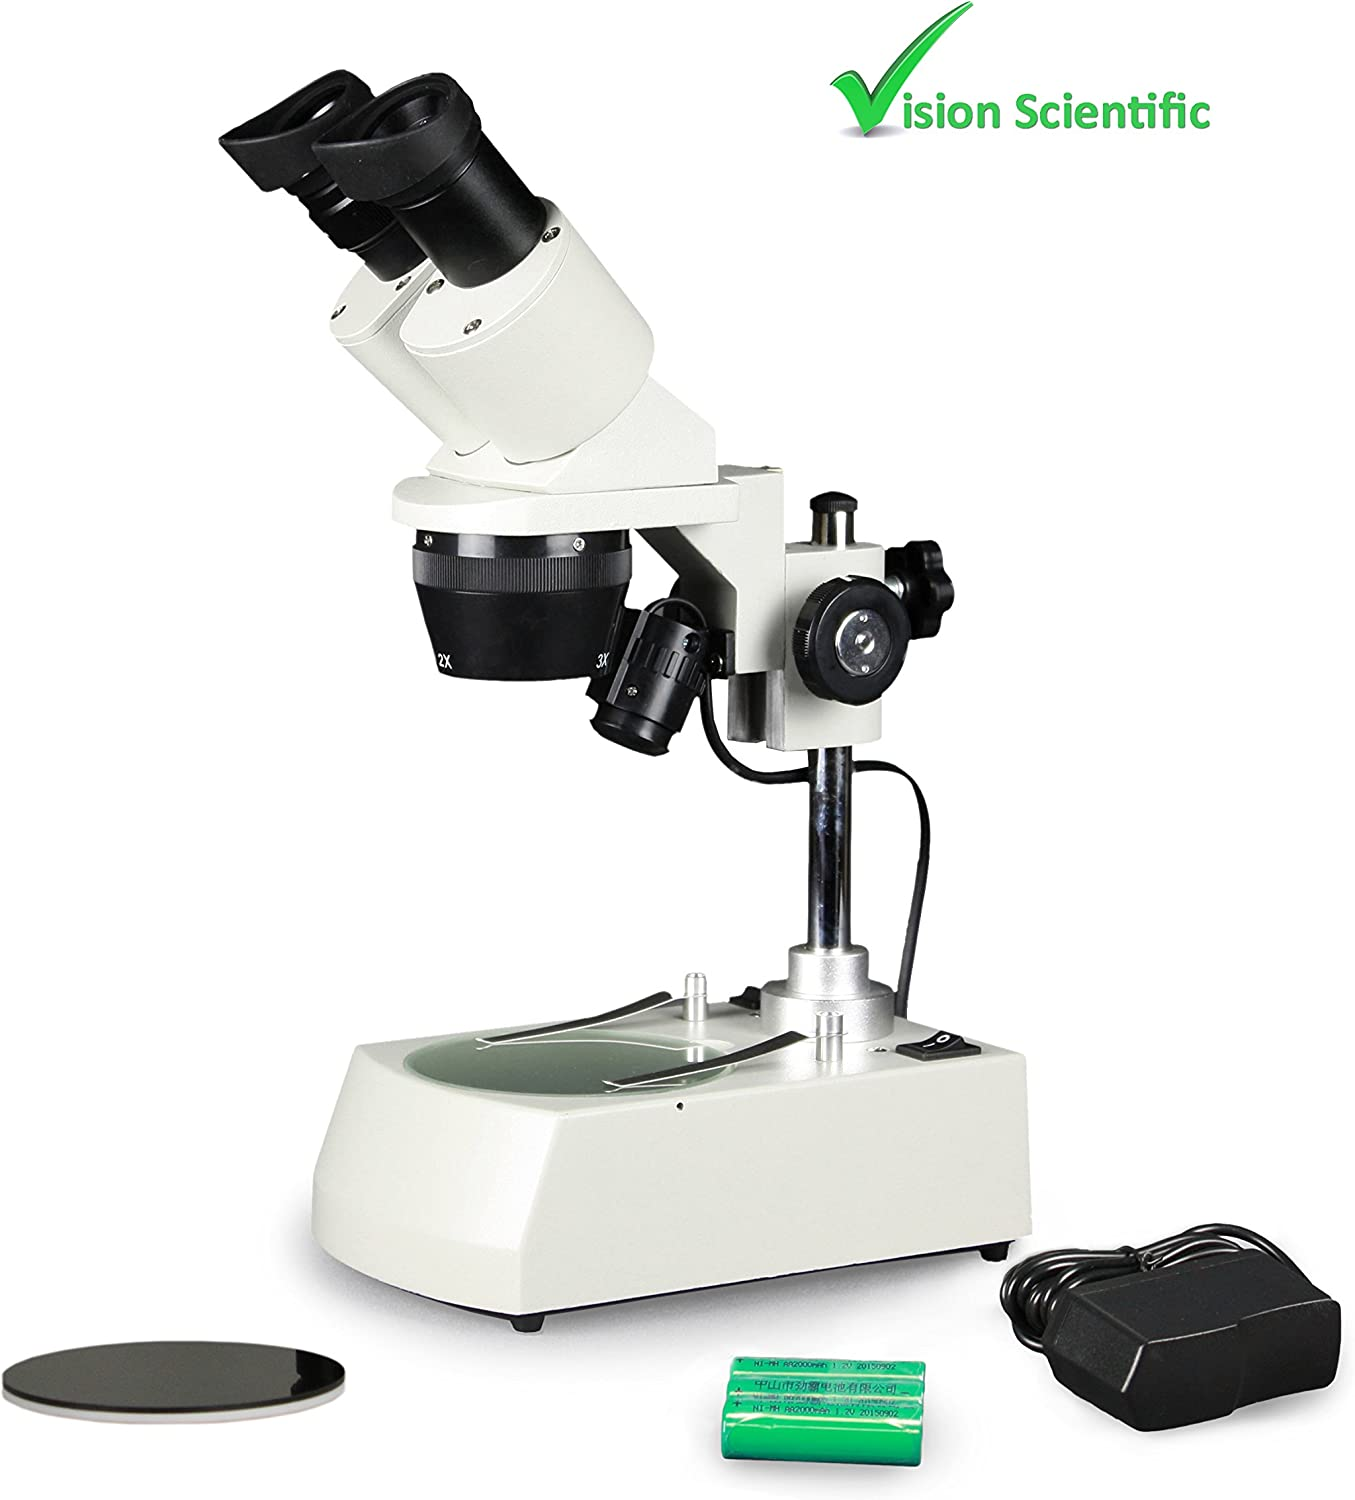 10X Magnification Top and Bottom LED Rechargeable Illumination 110V Parco Scientific Binocular Stereo Microscope 1X Objective 10X WF Eyepiece Post-Mounted Stand